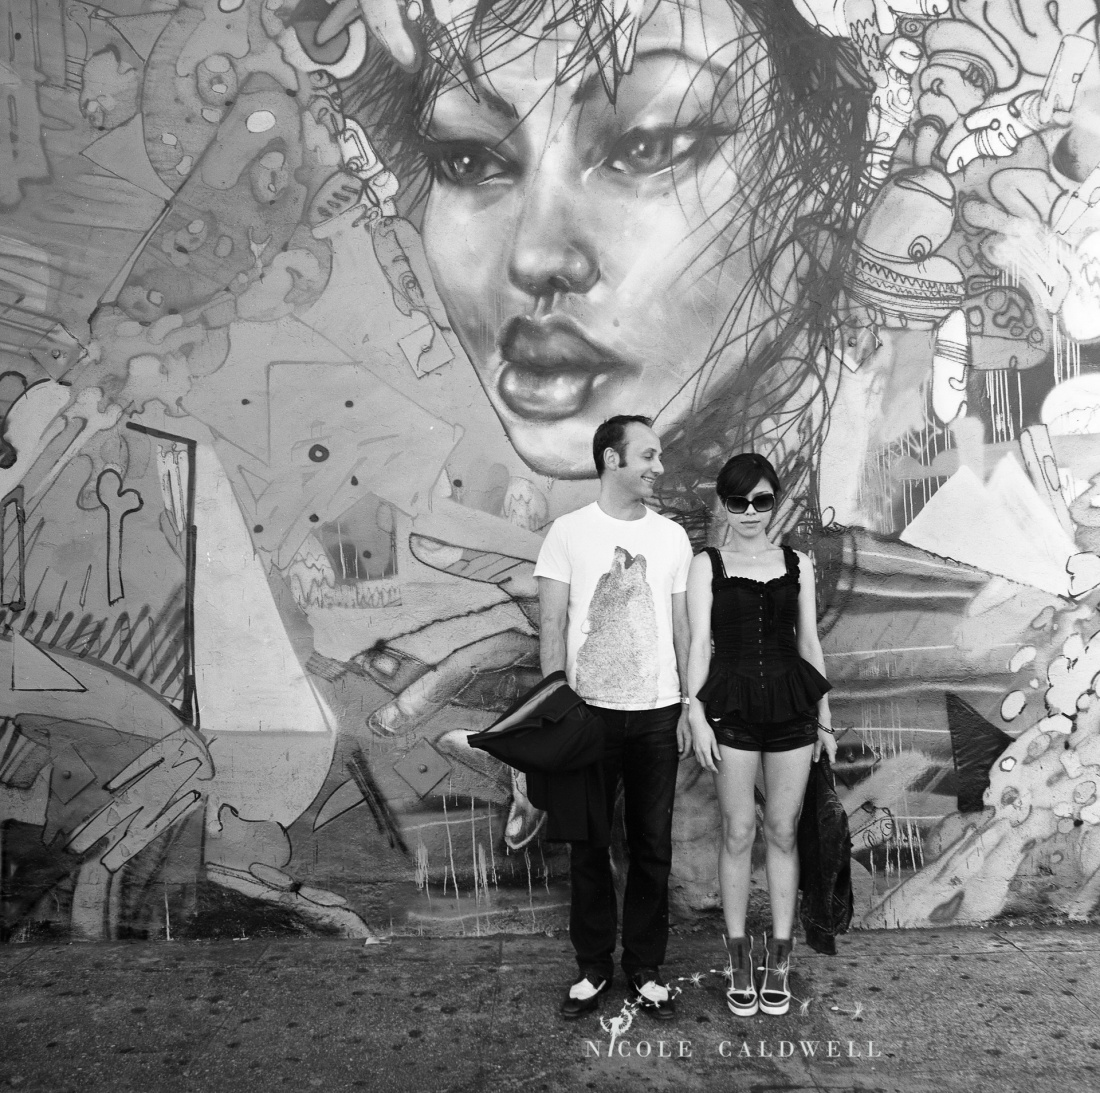 engagement session downtown la arts district David Choe by Nicole Caldwell